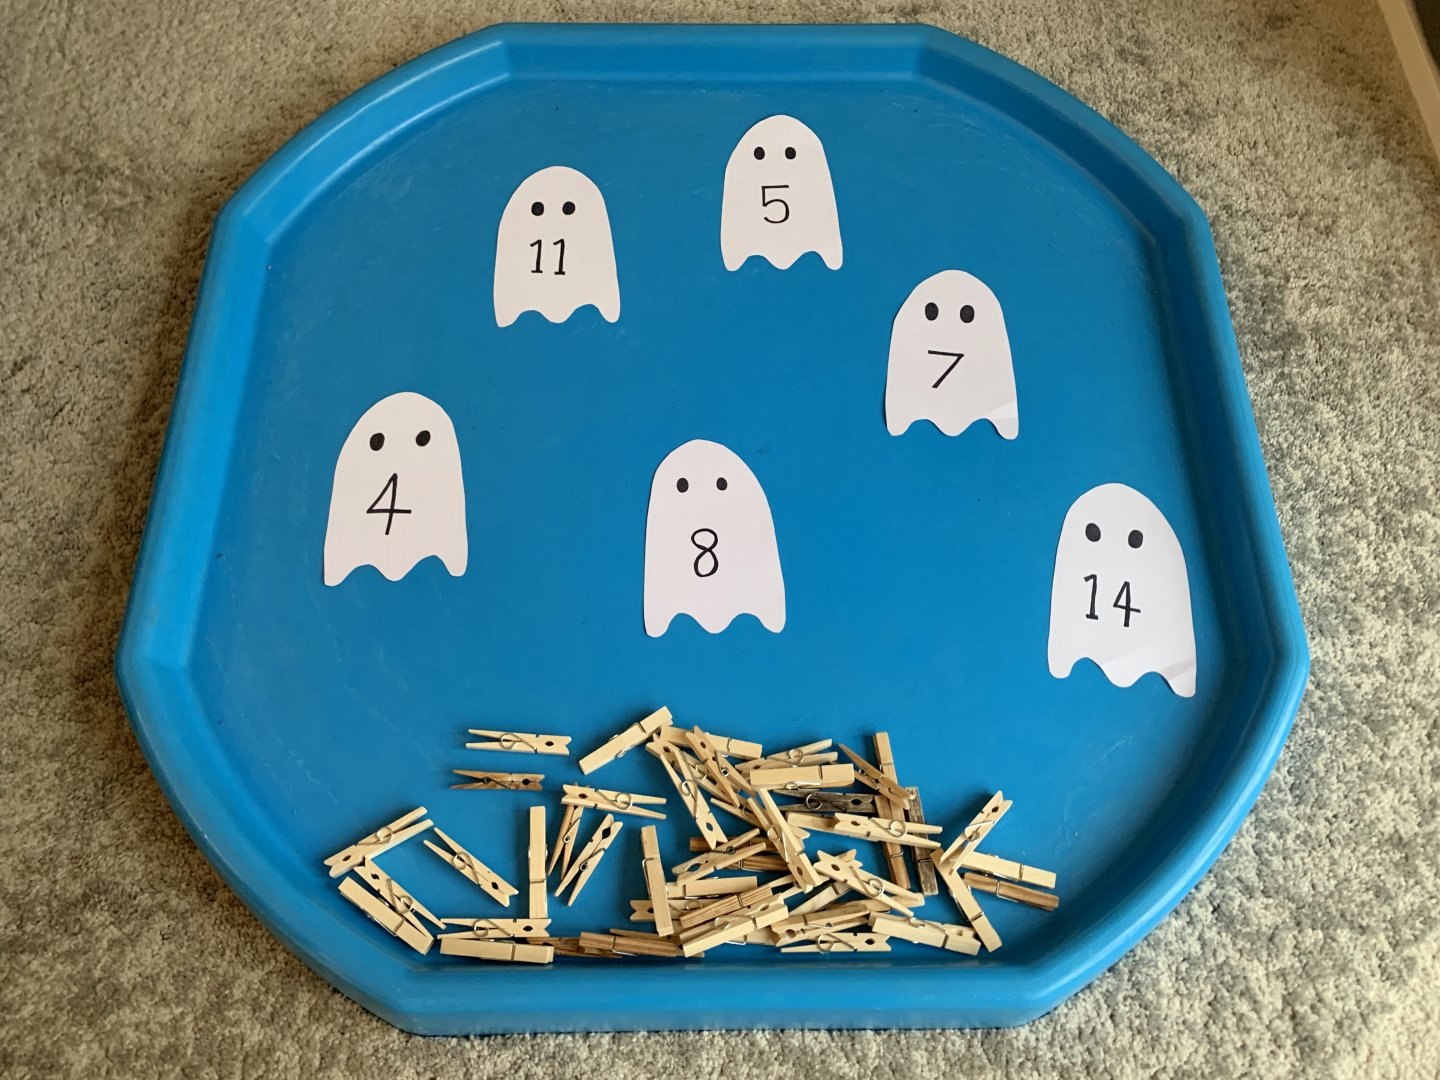 Six number ghosts sit in a blue tuff spot, with a pile of pegs underneath them.